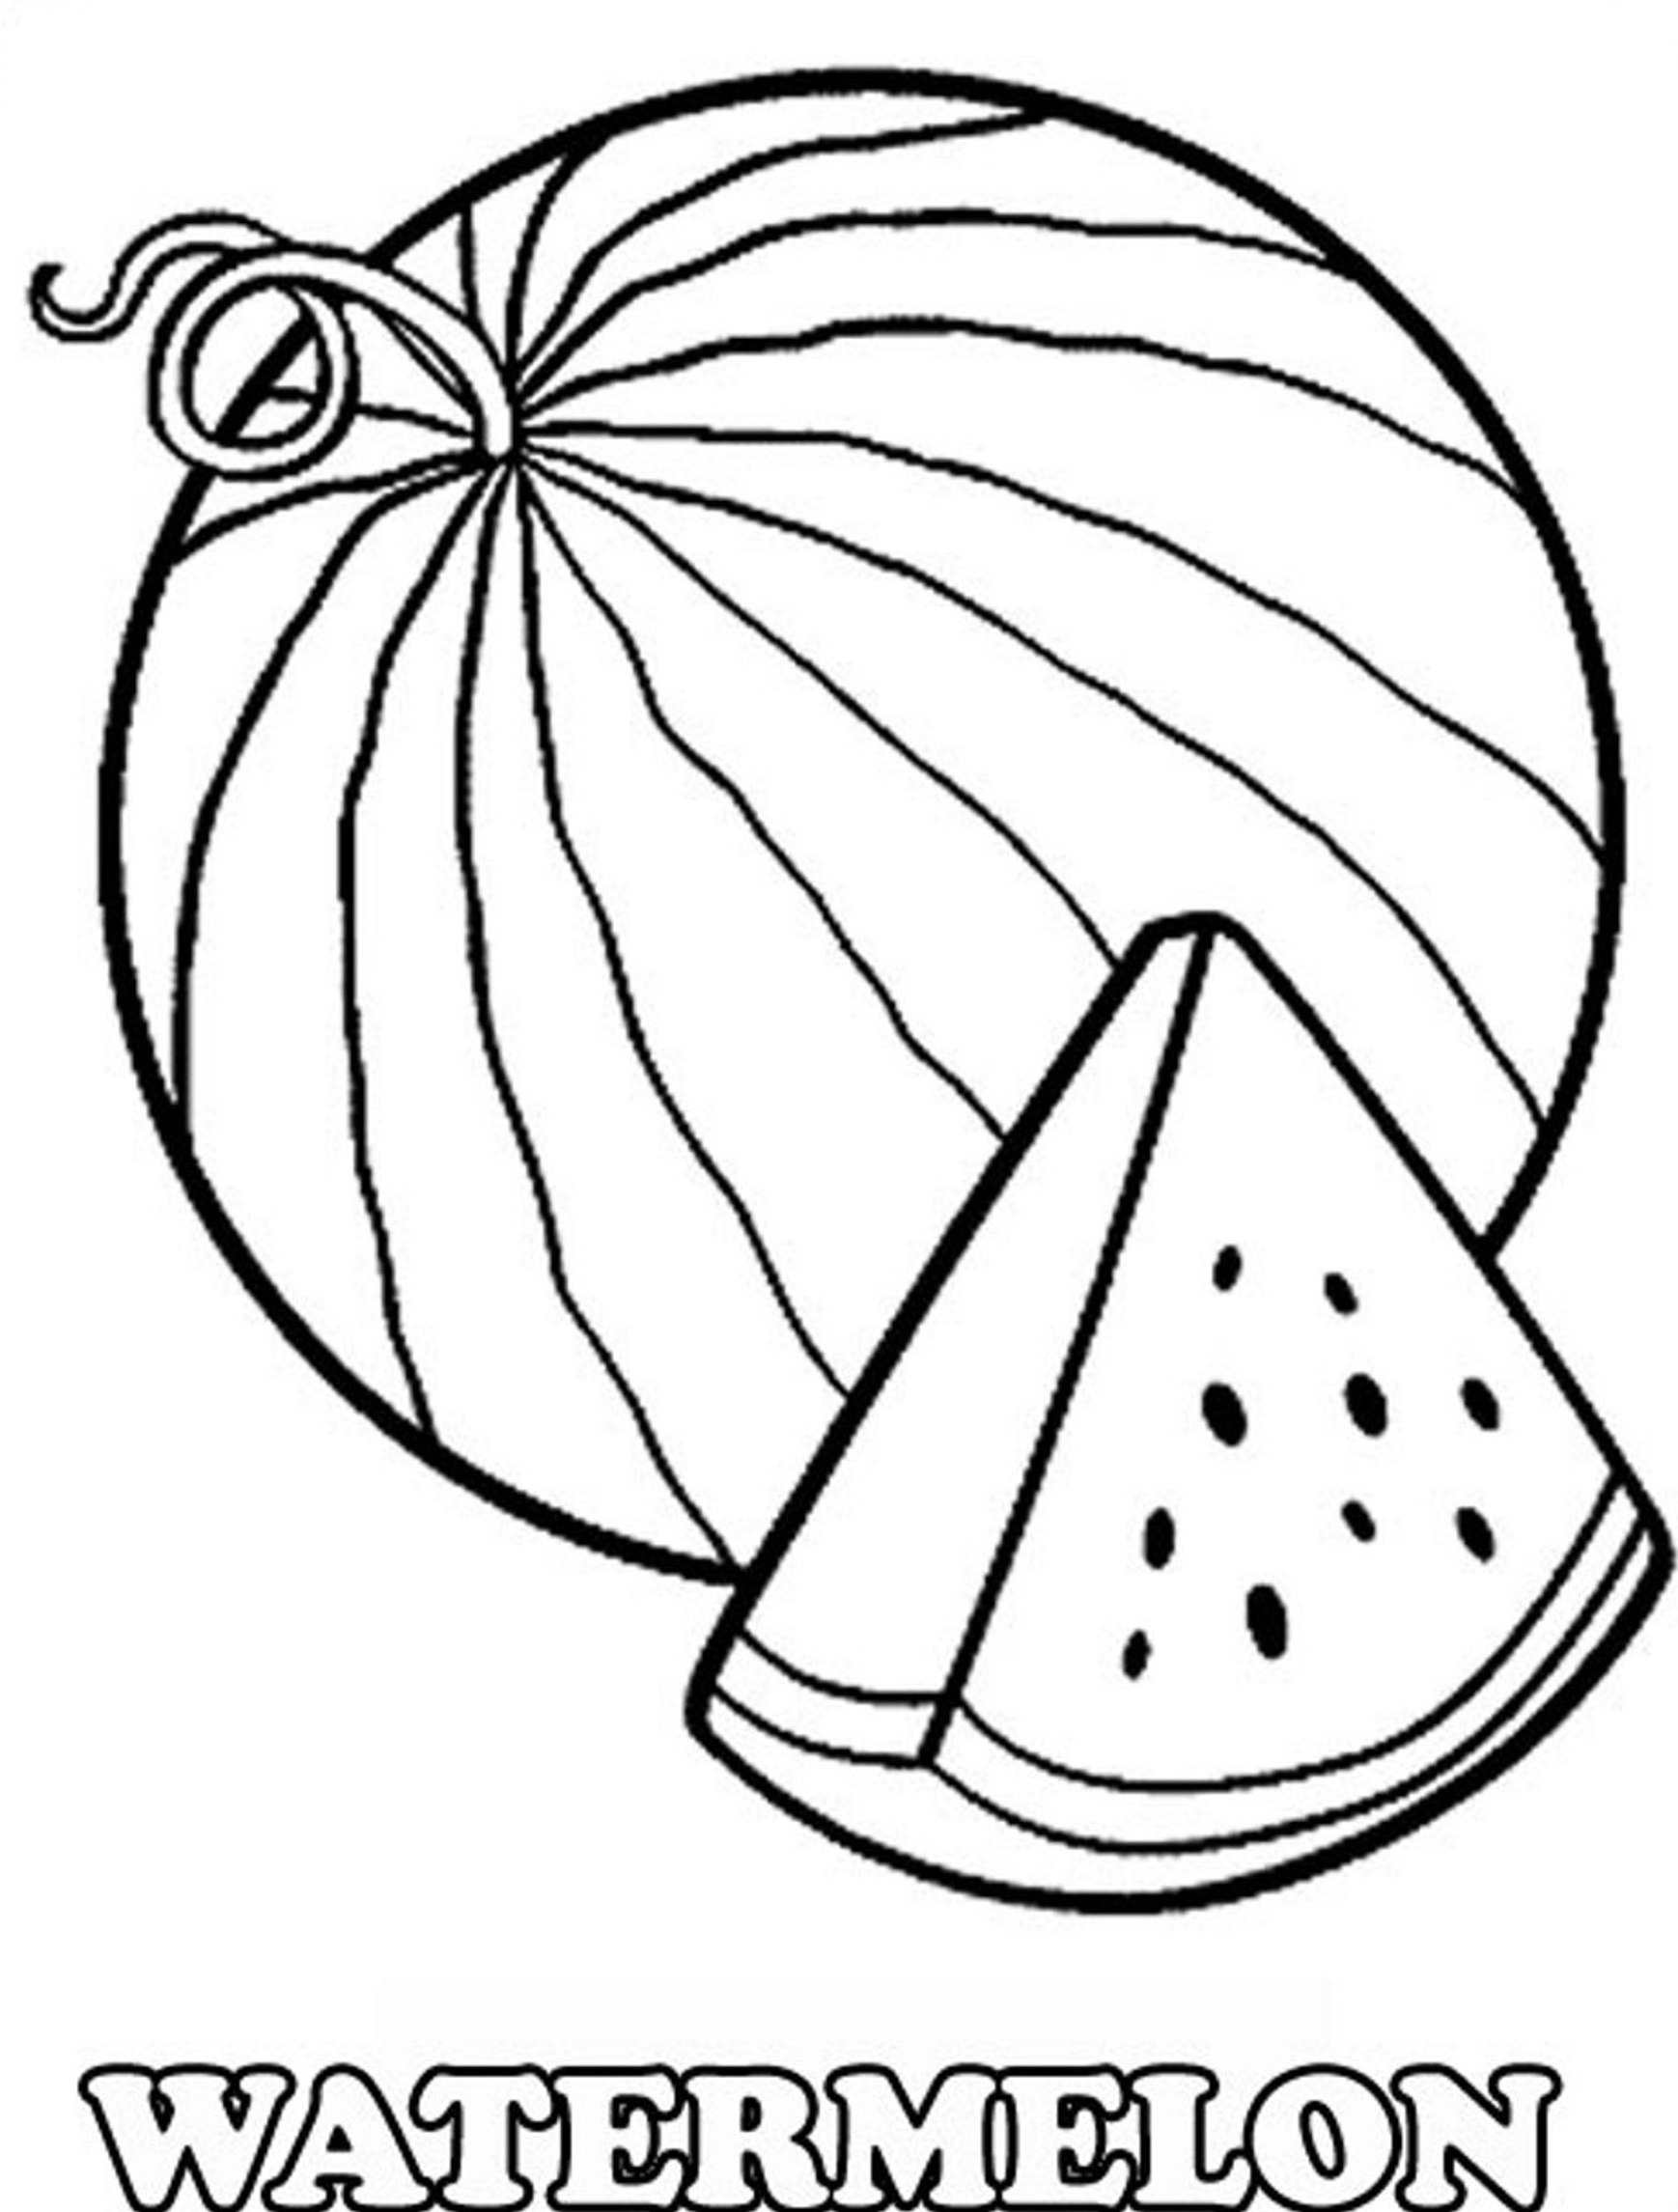 watermelon coloring image watermelon slice drawing at getdrawings free download watermelon coloring image